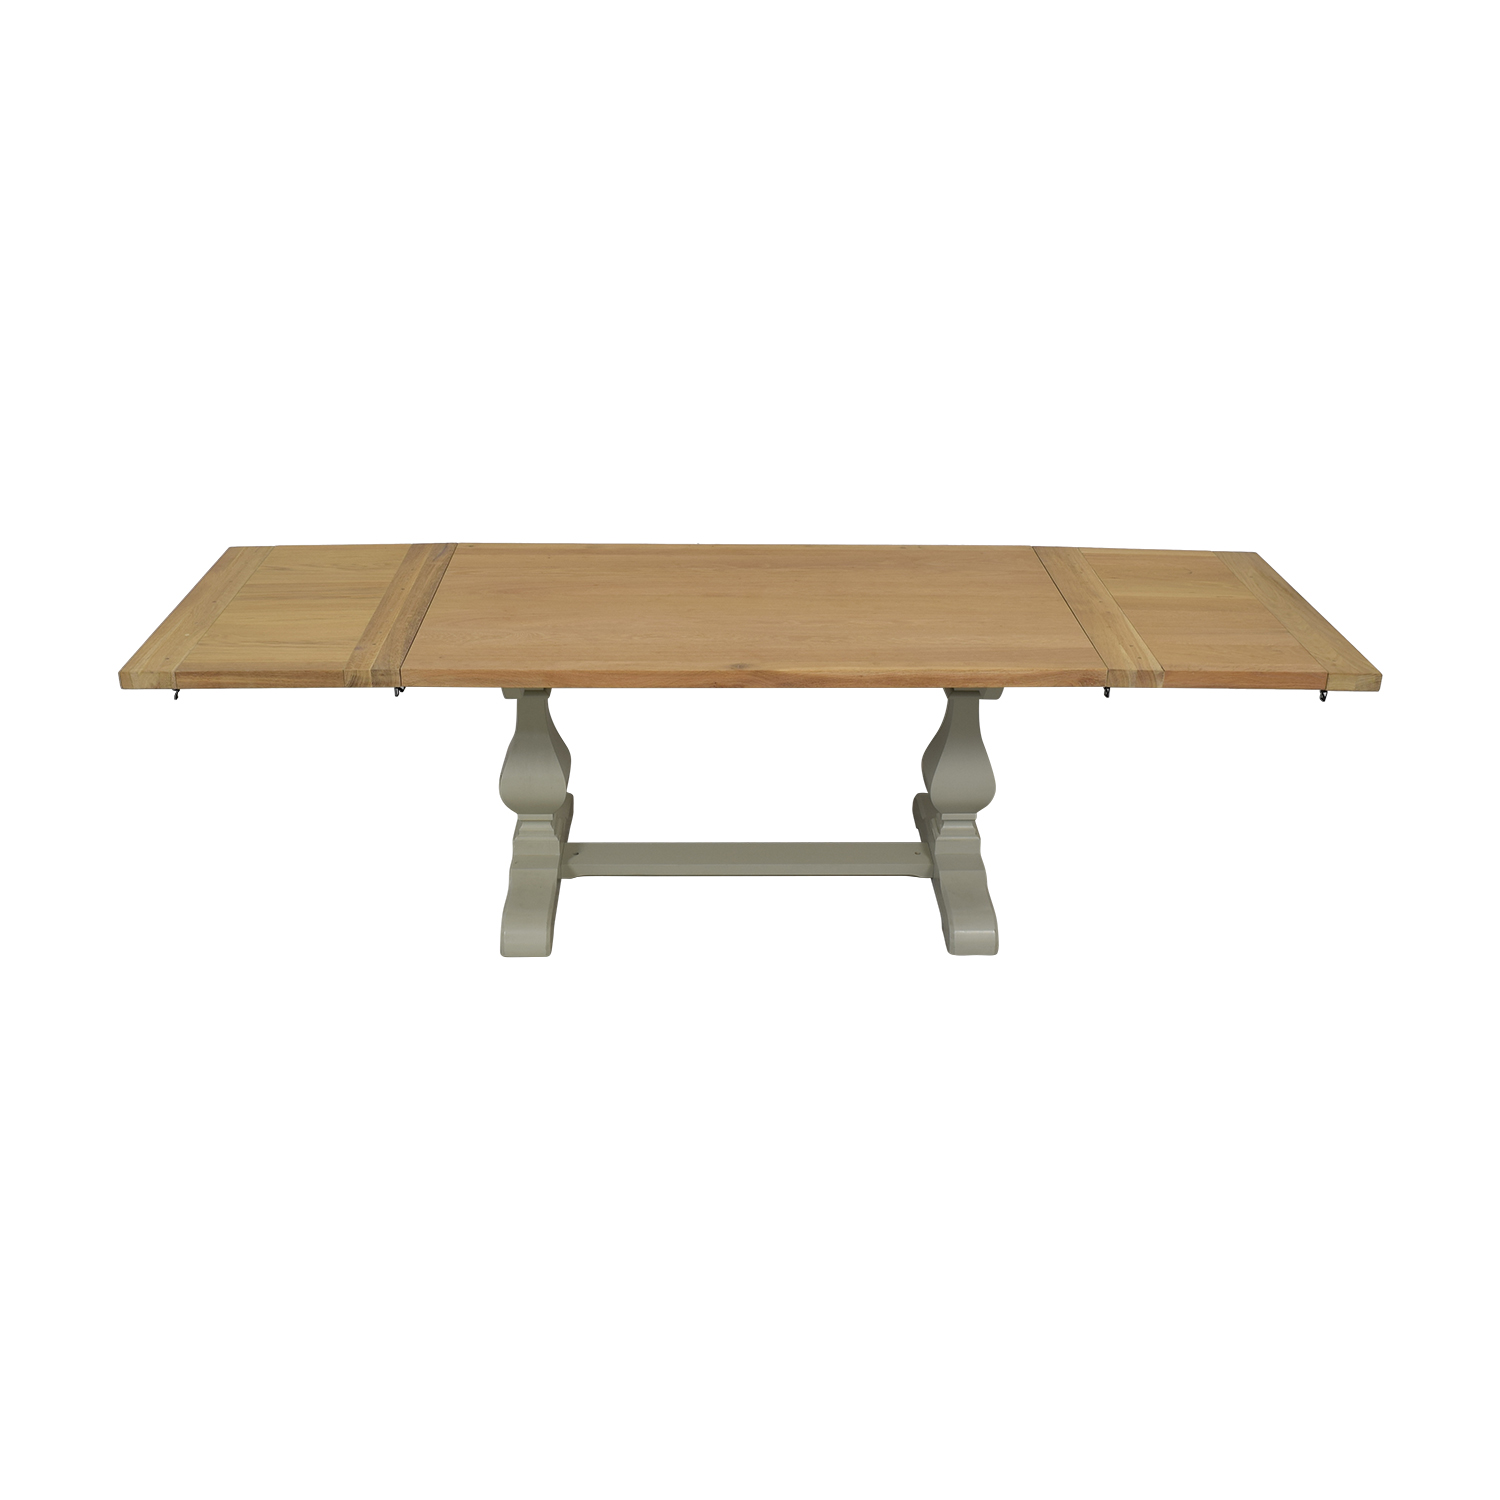 John Lewis John Lewis Beech Wood and Light Green Extendable Dining Table for sale